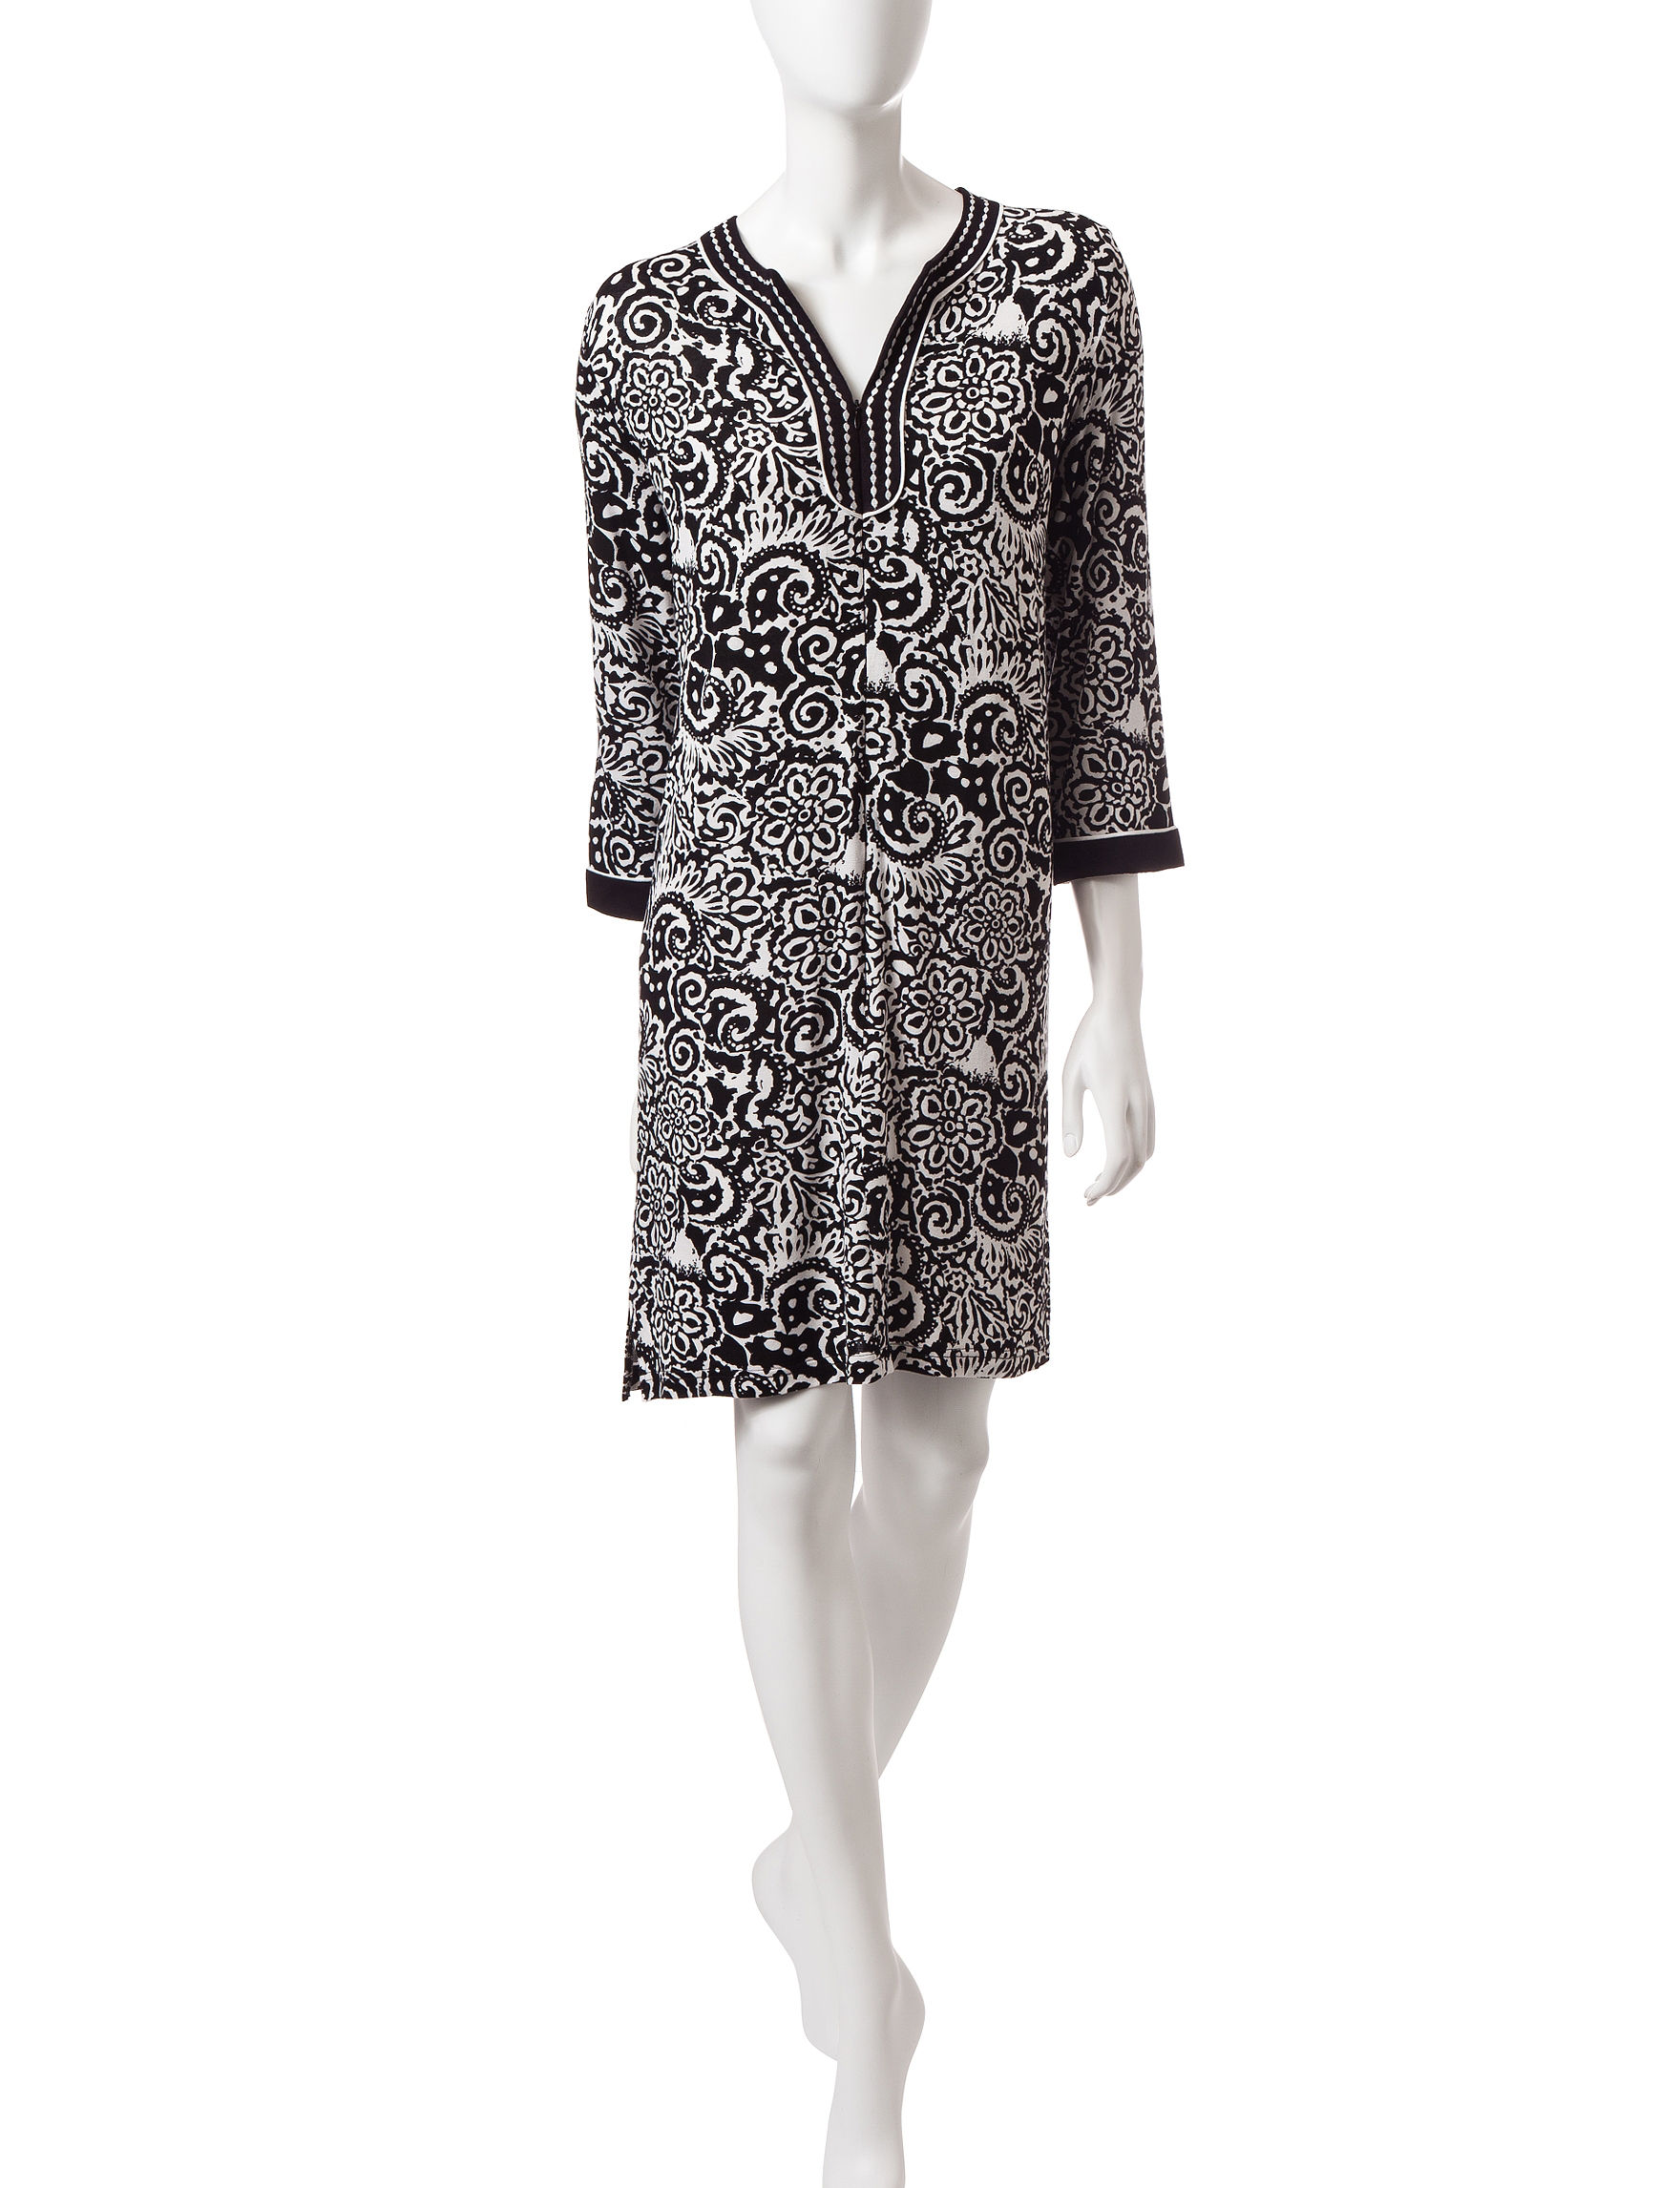 Jasmine Rose Black / White Robes, Wraps & Dusters